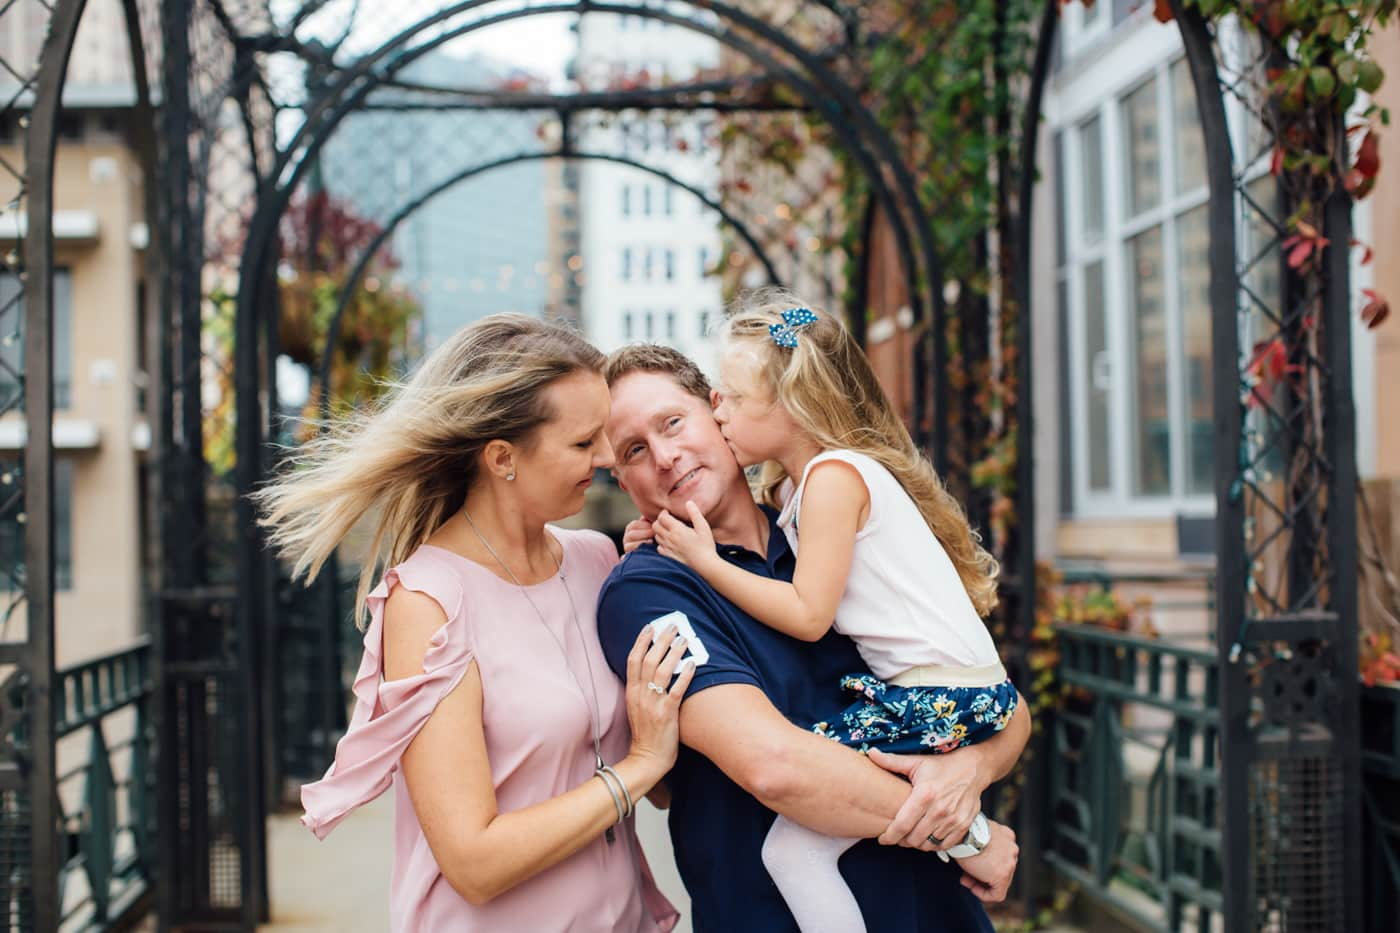 Family Session - Milwaukee, Wi - Double You Photography - Kat Wegrzyniak